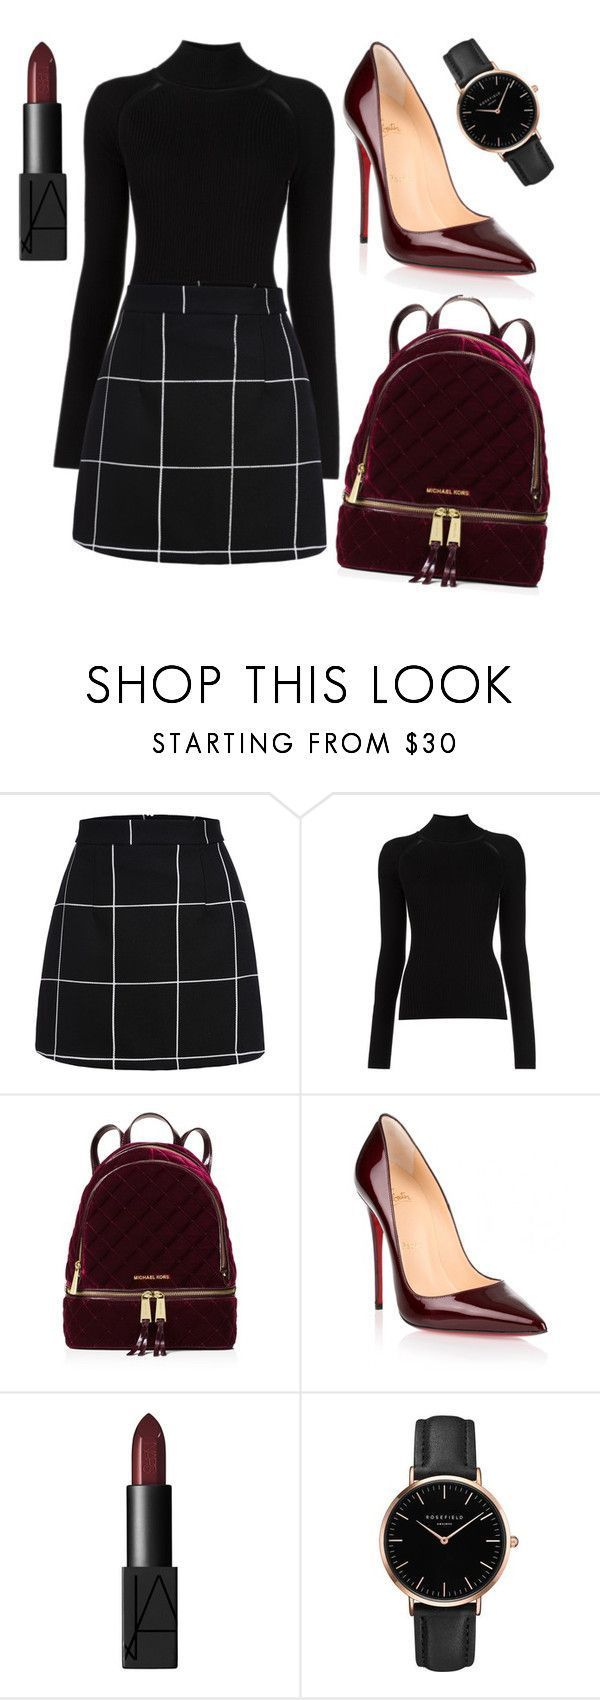 Untitled #72 by sashazaiats on Polyvore featuring Misha Nonoo, MICHAEL Michael Kors, Christian Louboutin, NARS Cosmetics and Topshop